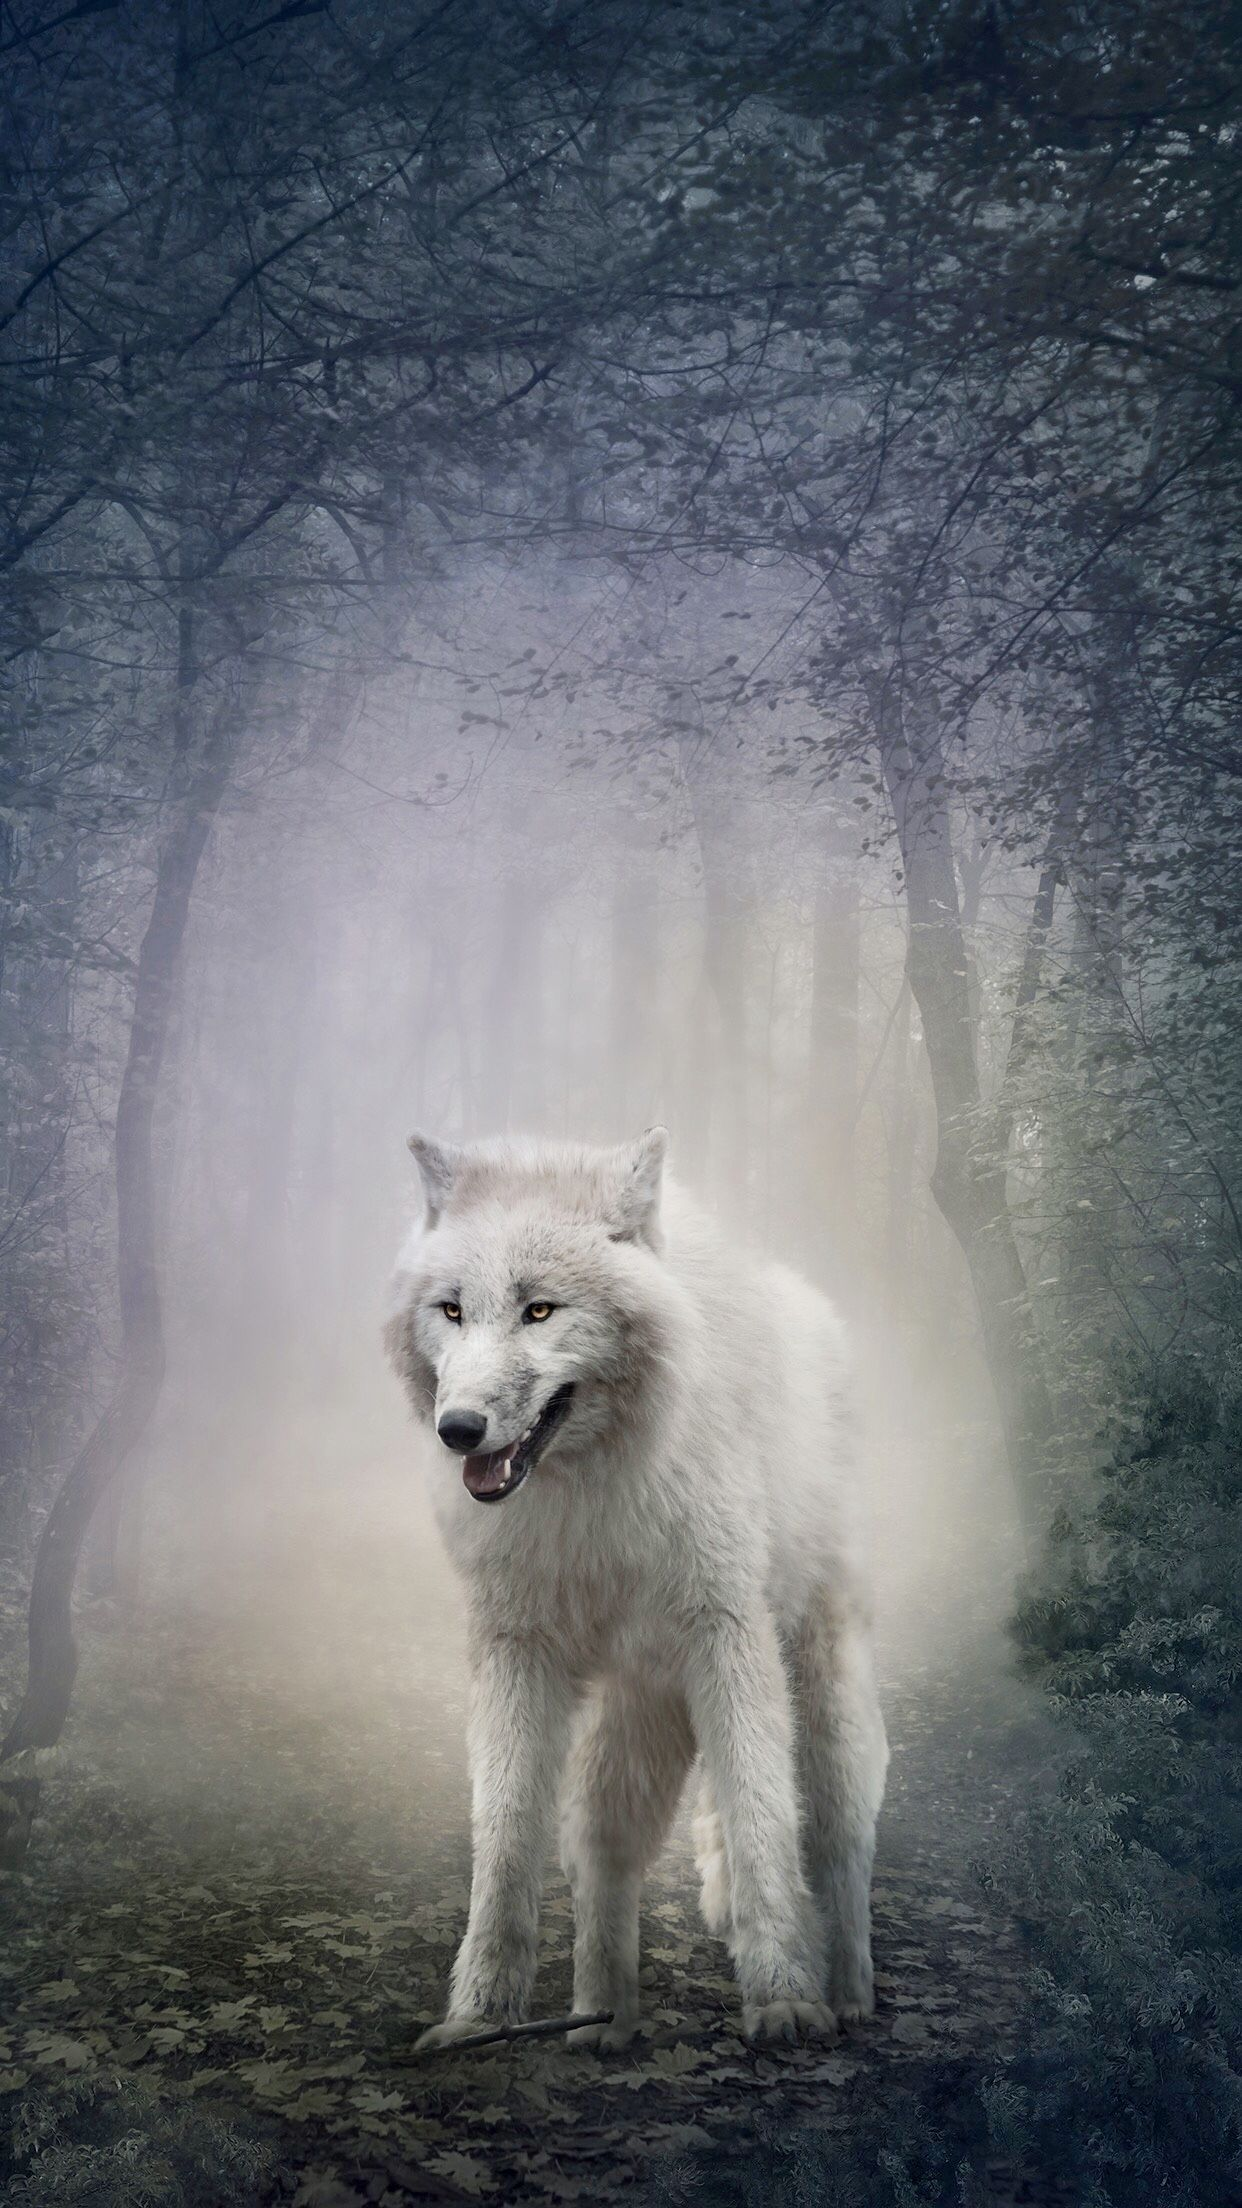 Wolf Iphone Wallpaper Iphone Wallpapers Arte Dei Lupi E Animali